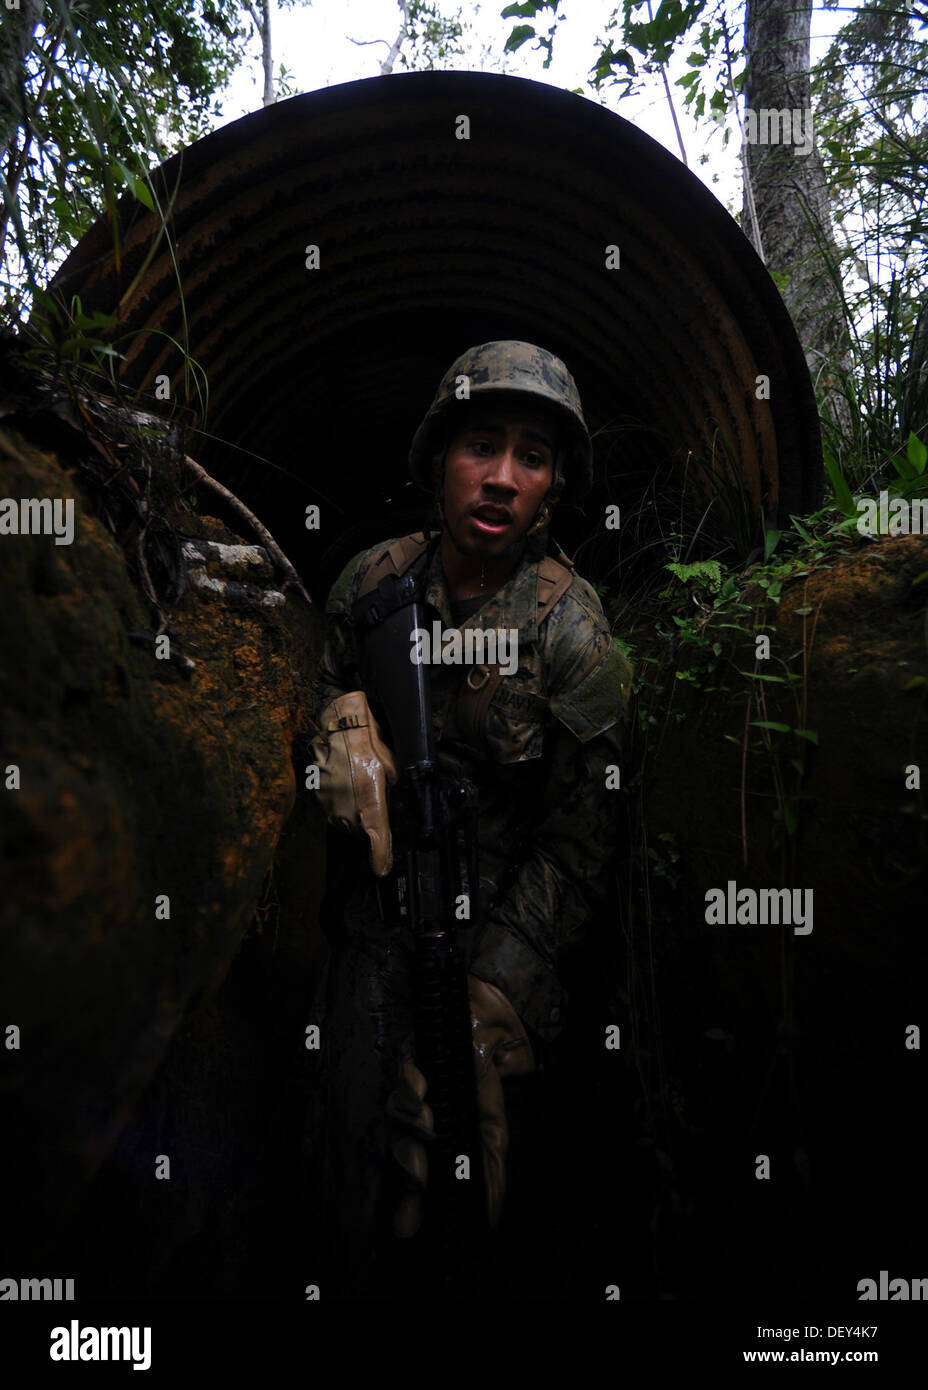 Naval Mobile Construction Battalion (NMCB) 3 Construction Mechanic 3rd Class Robert Cardona edges through a covered obstacle whi - Stock Image